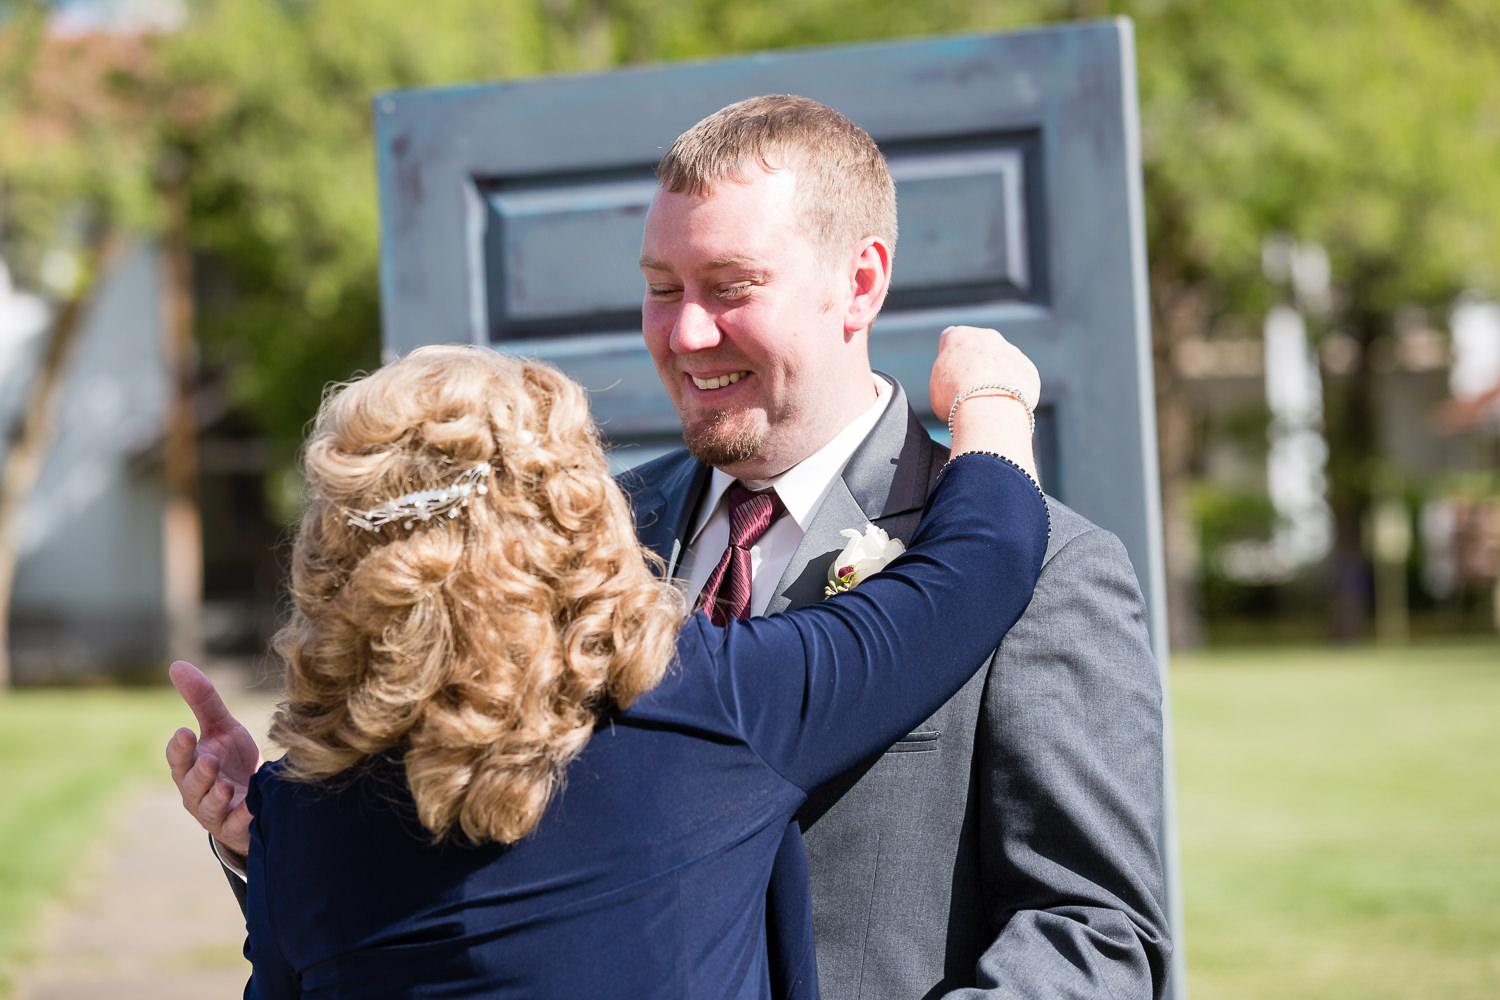 heritage-hall-missoula-montana-groom-hugs-mother-in-law-ceremony.jpg